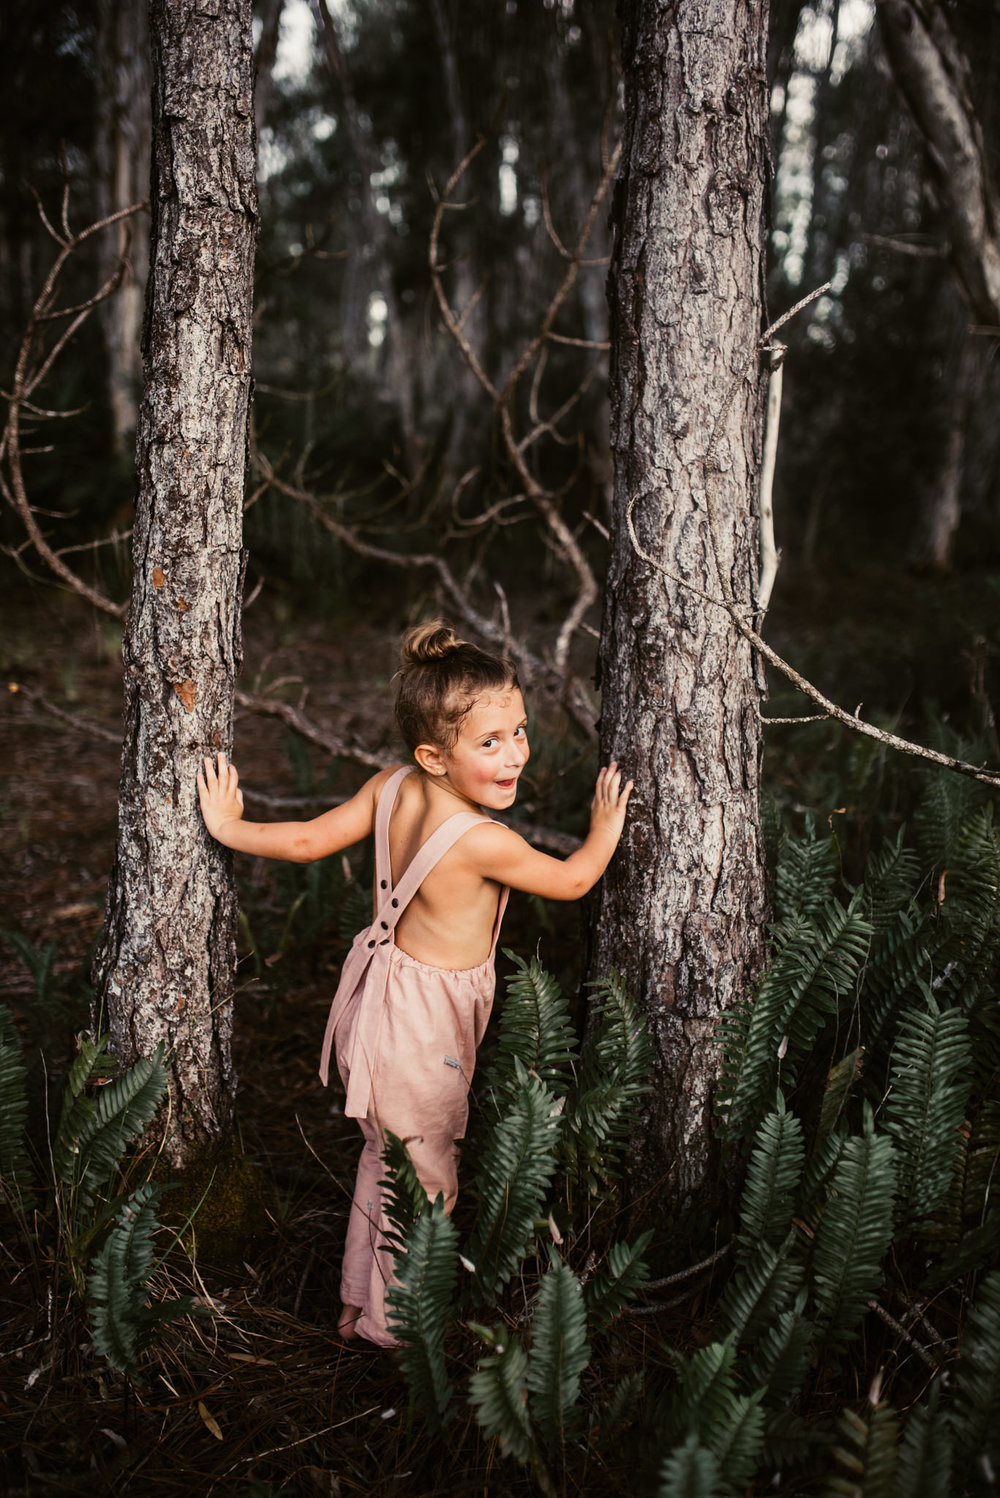 twyla jones photography - treasure coast florida - childrens adventure clothing commercial shoot--48.jpg